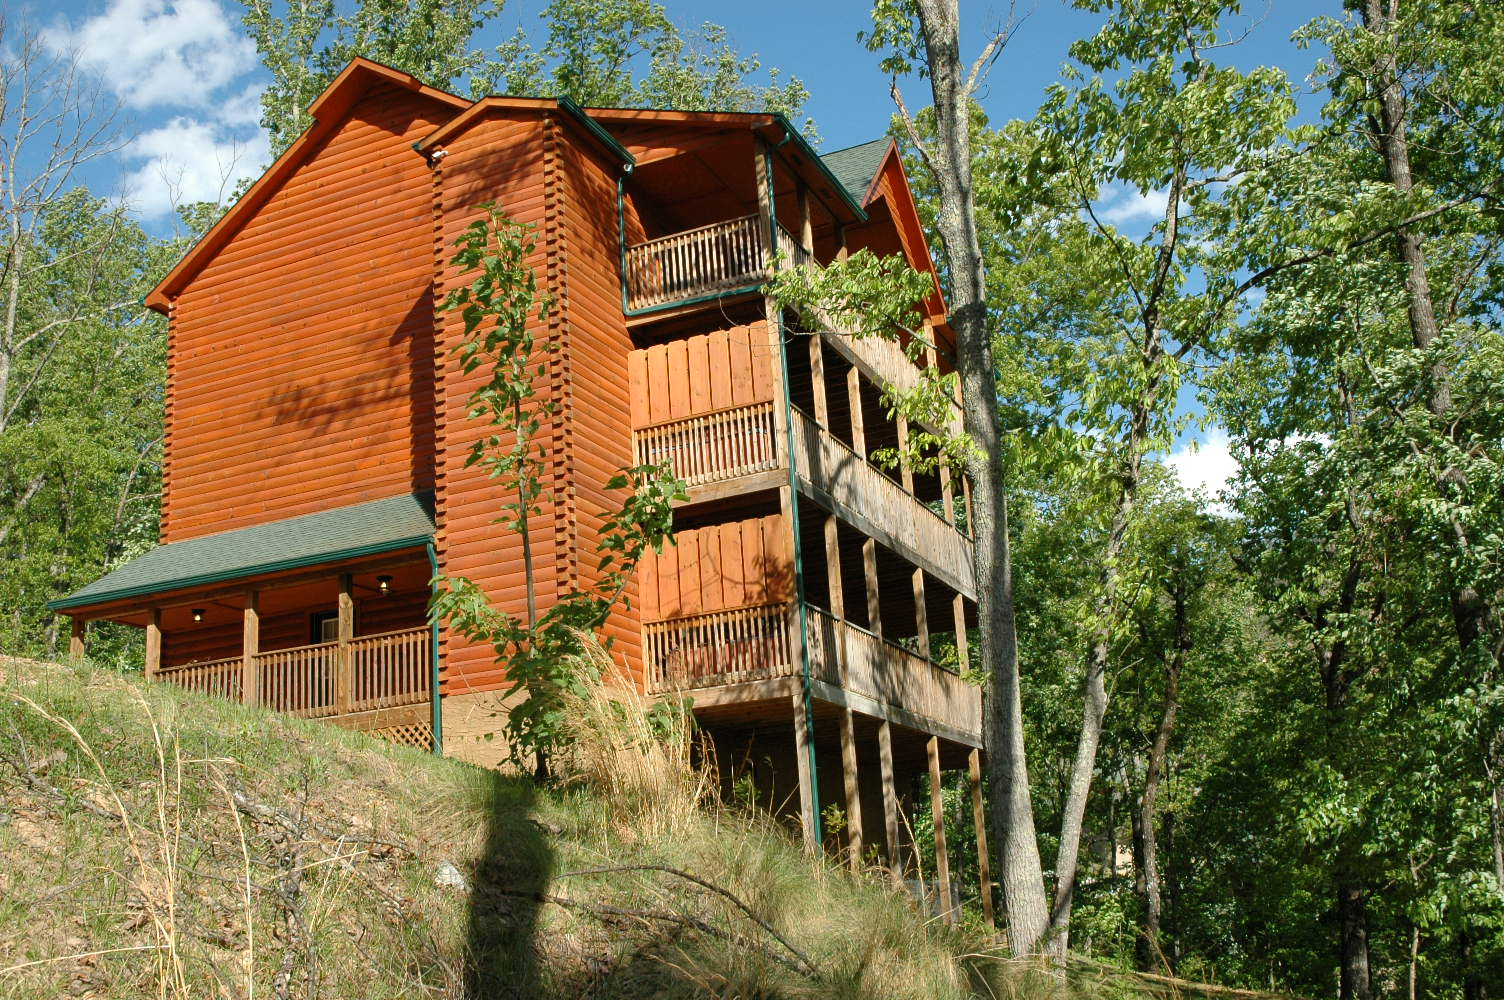 magic destinations united valley accommodation states us east retreats cabins wears mountain smoky features luxury natural